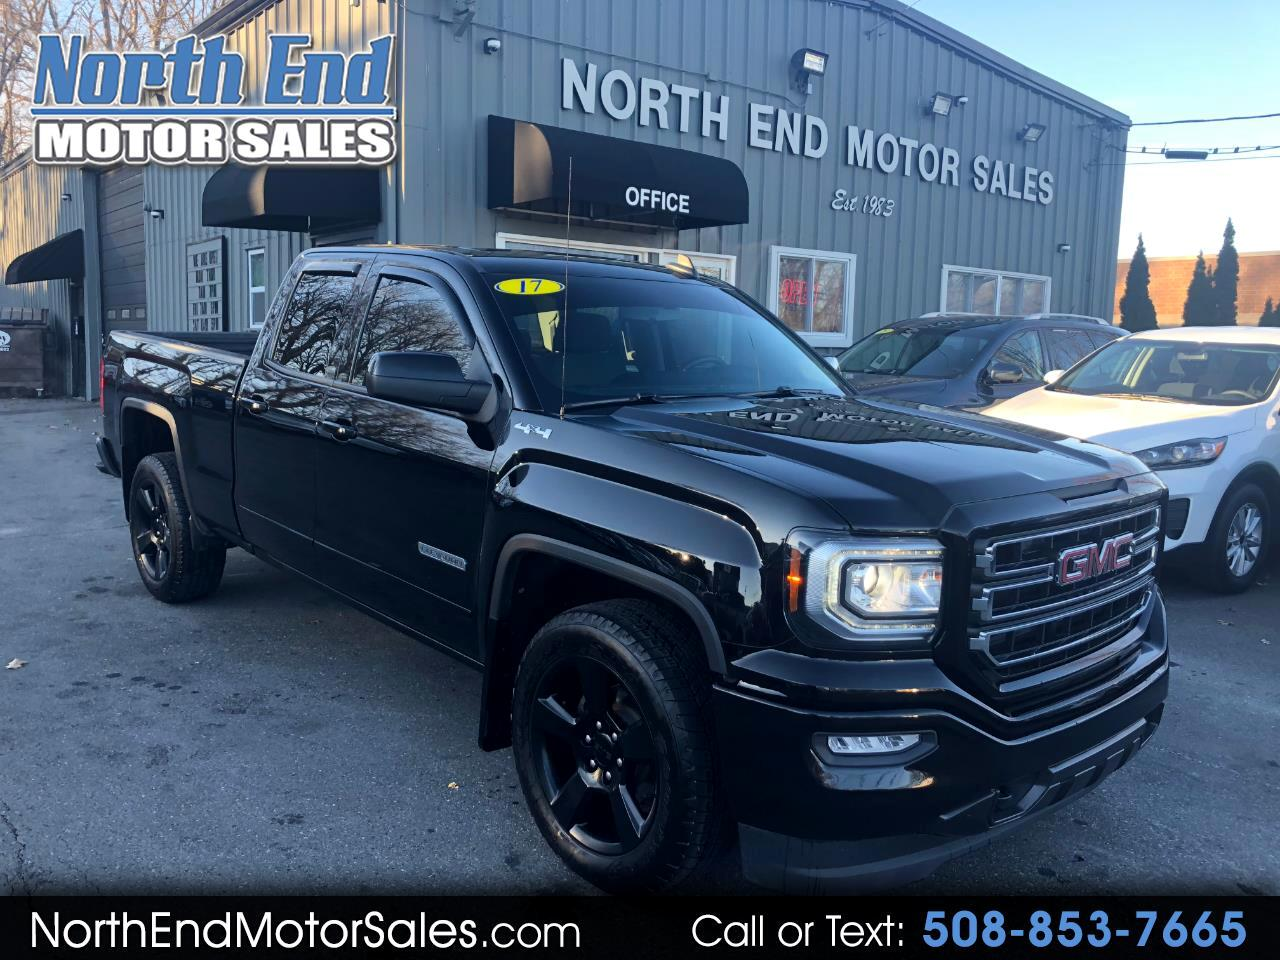 2017 GMC Sierra 1500 4WD EXTENDED CAB ELEVATION PACKAGE